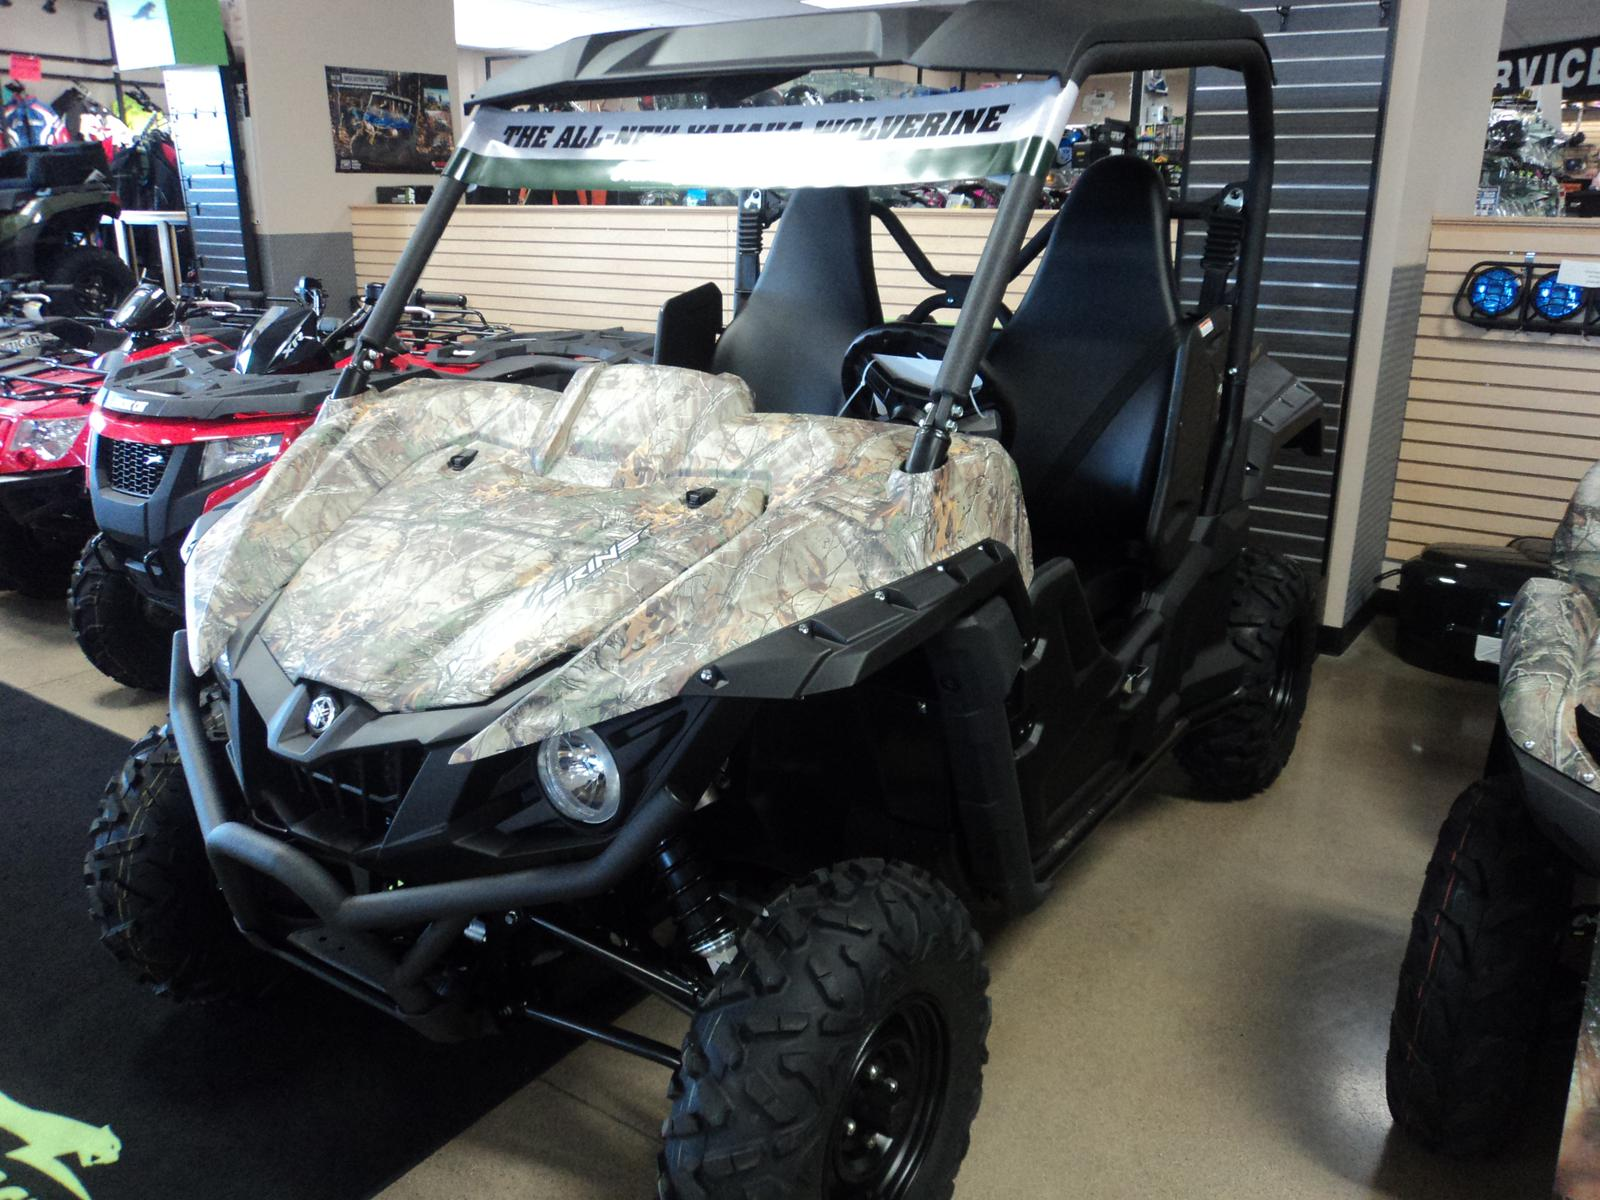 2016 Yamaha Wolverine R-Spec - Realtree Xtra, motorcycle listing